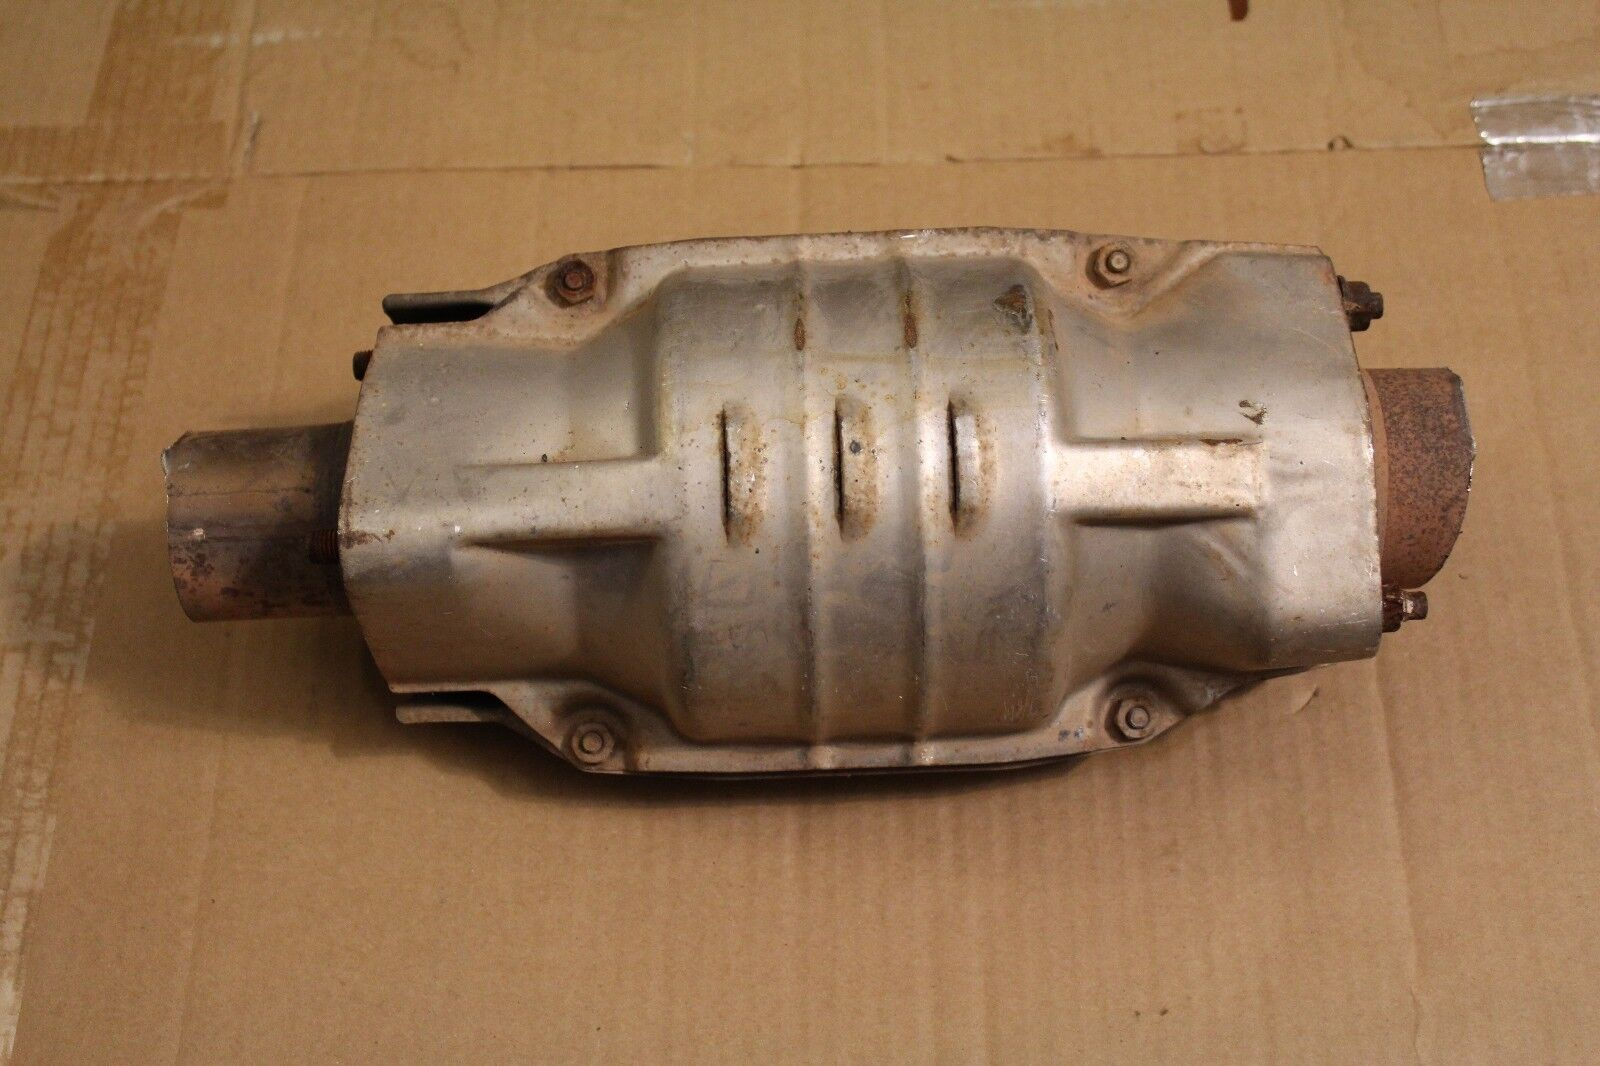 Used Honda Exhaust Parts for Sale - Page 76